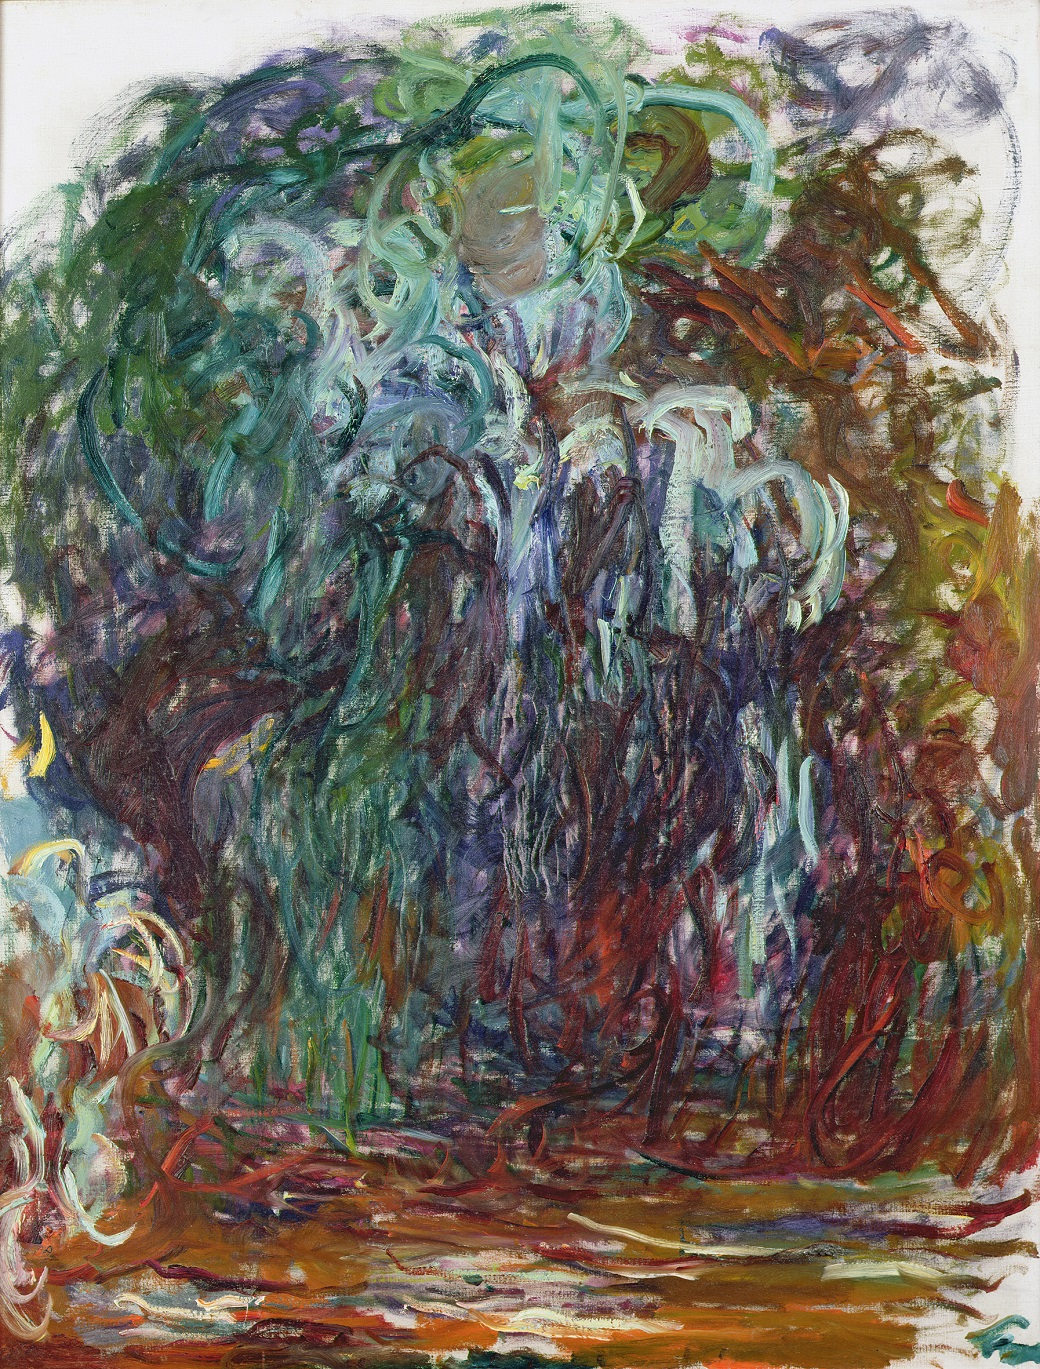 Claude Monet, Salice piangente (1920-21), olio su tela. Parigi Museo Marmottan Monet (copyright Bridgeman-Giraudon press)